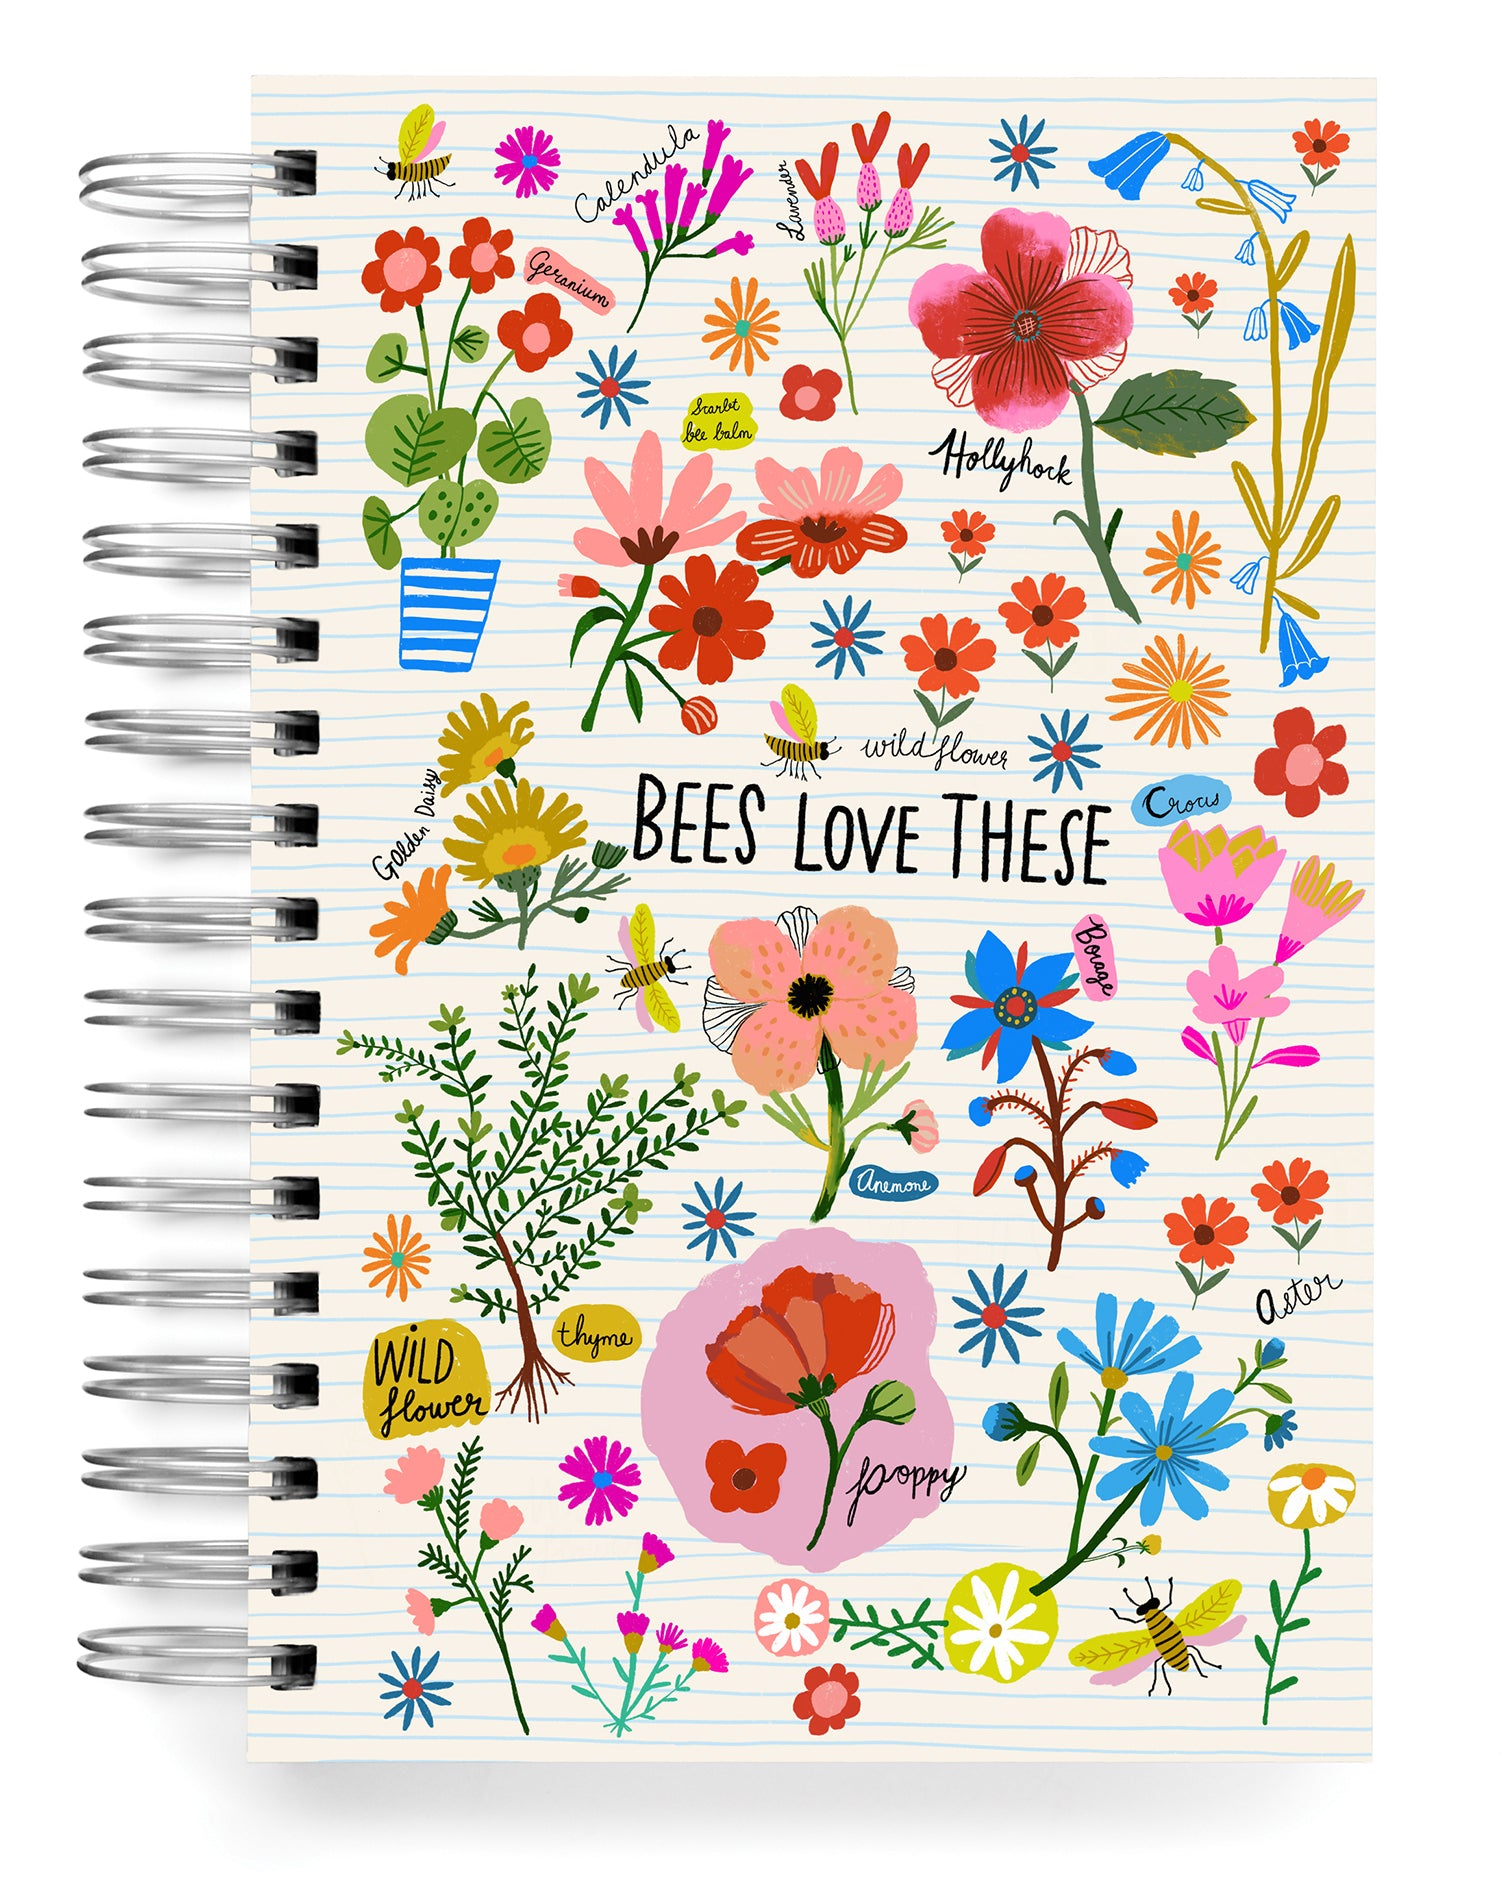 Bees love these Jumbo Journal